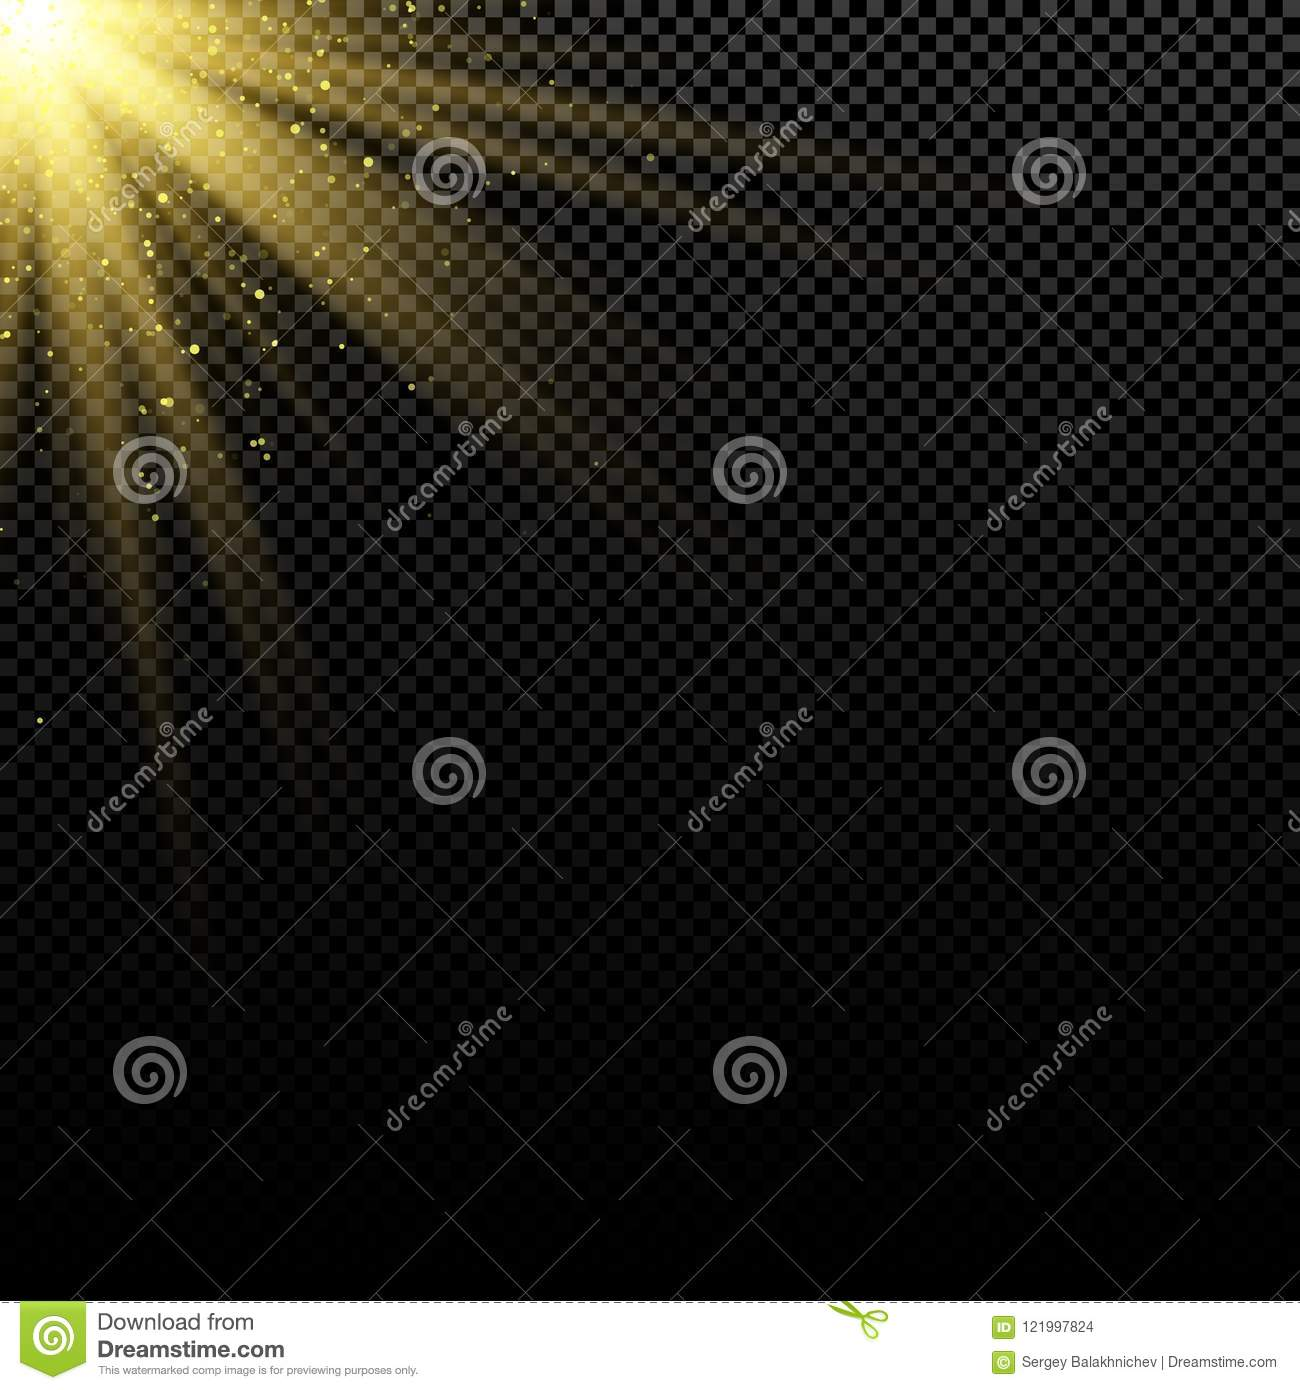 To acquire Dark stylish background light text picture trends